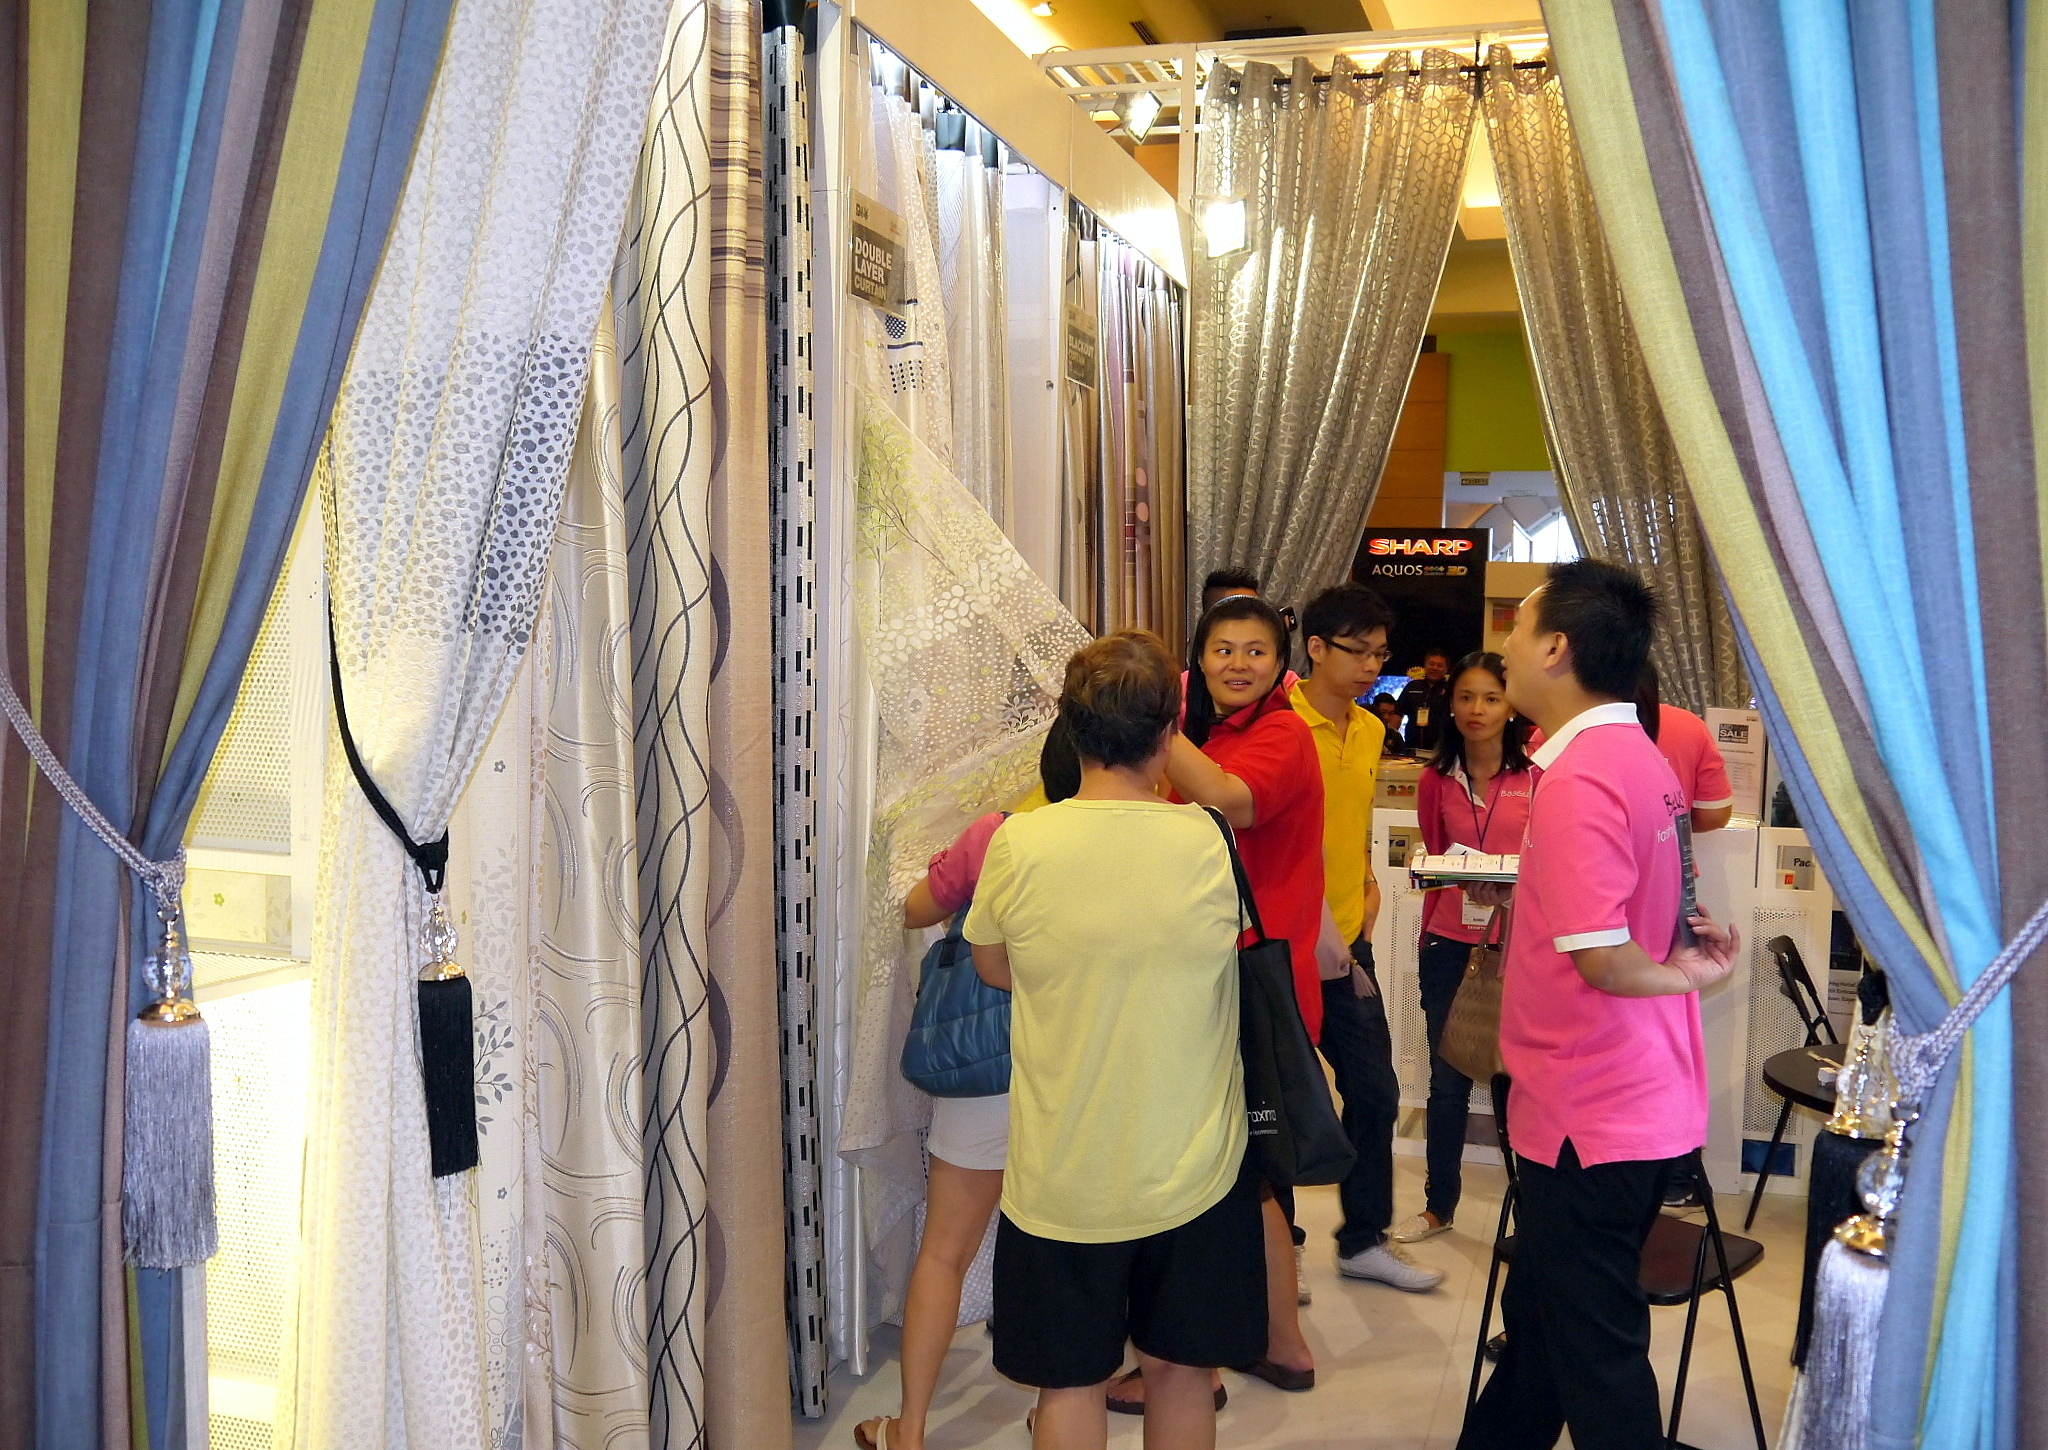 Visitors can choose from a large selection of curtains and blinds at the fair